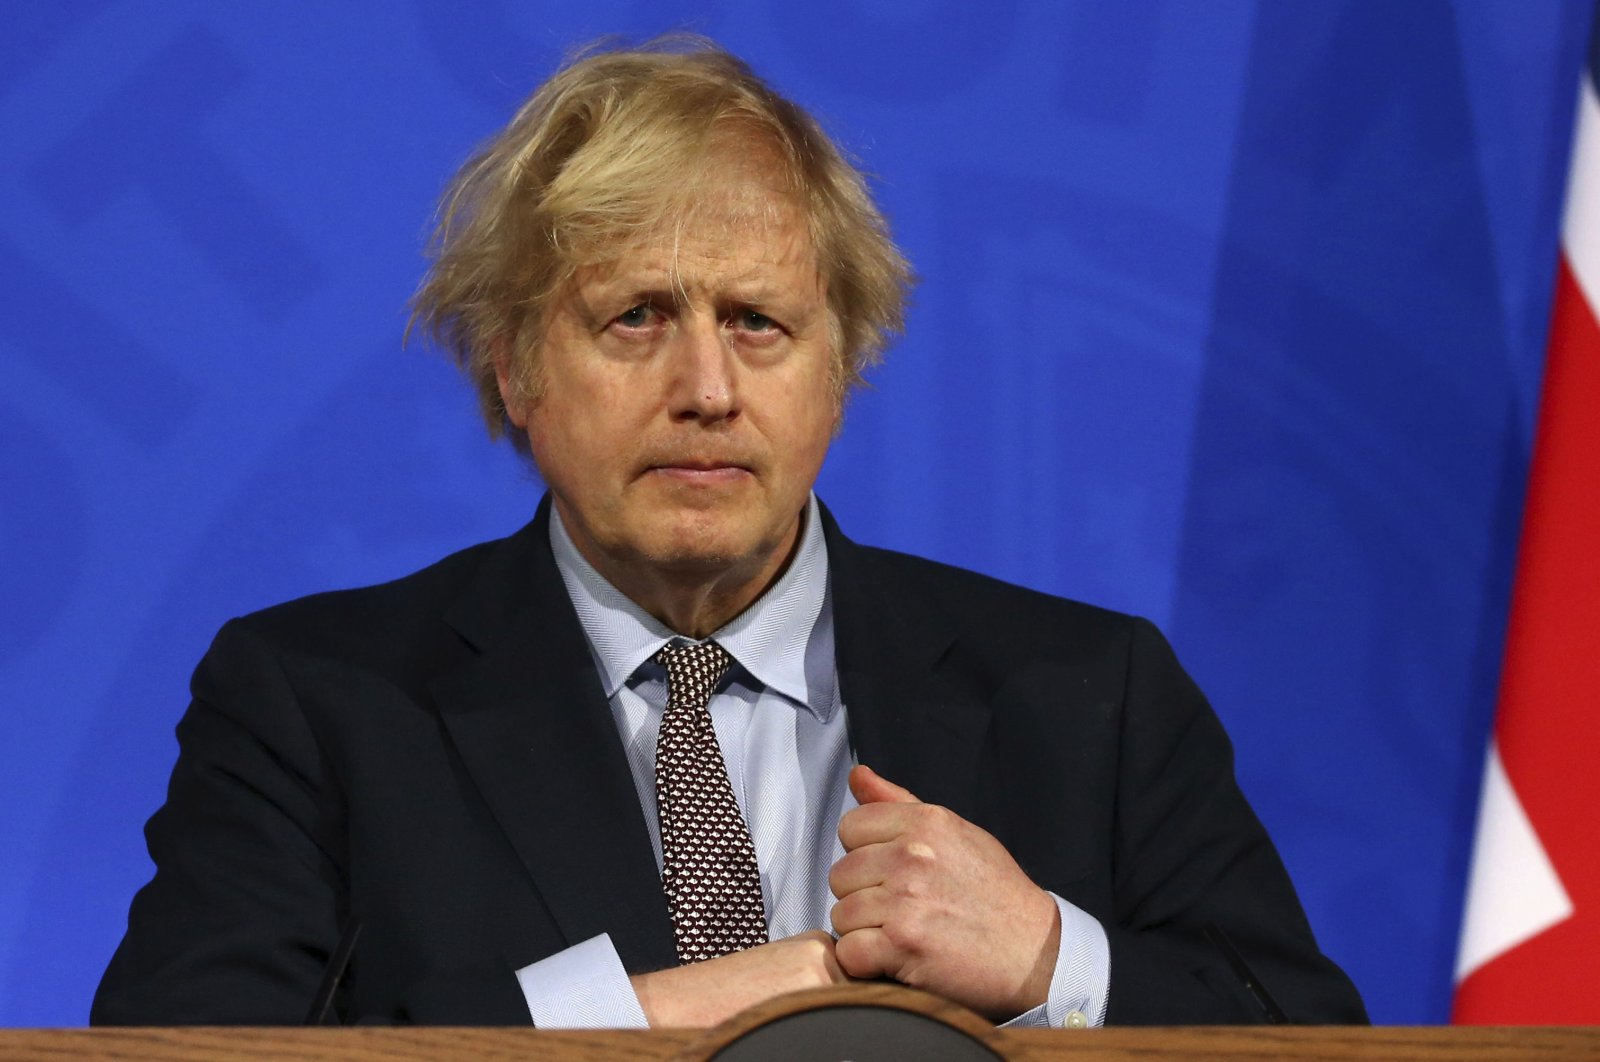 Britain's Prime Minister Boris Johnson attends a media briefing on COVID-19 from Downing Street's media briefing room in London, U.K., March 29, 2021. (AP Photo)